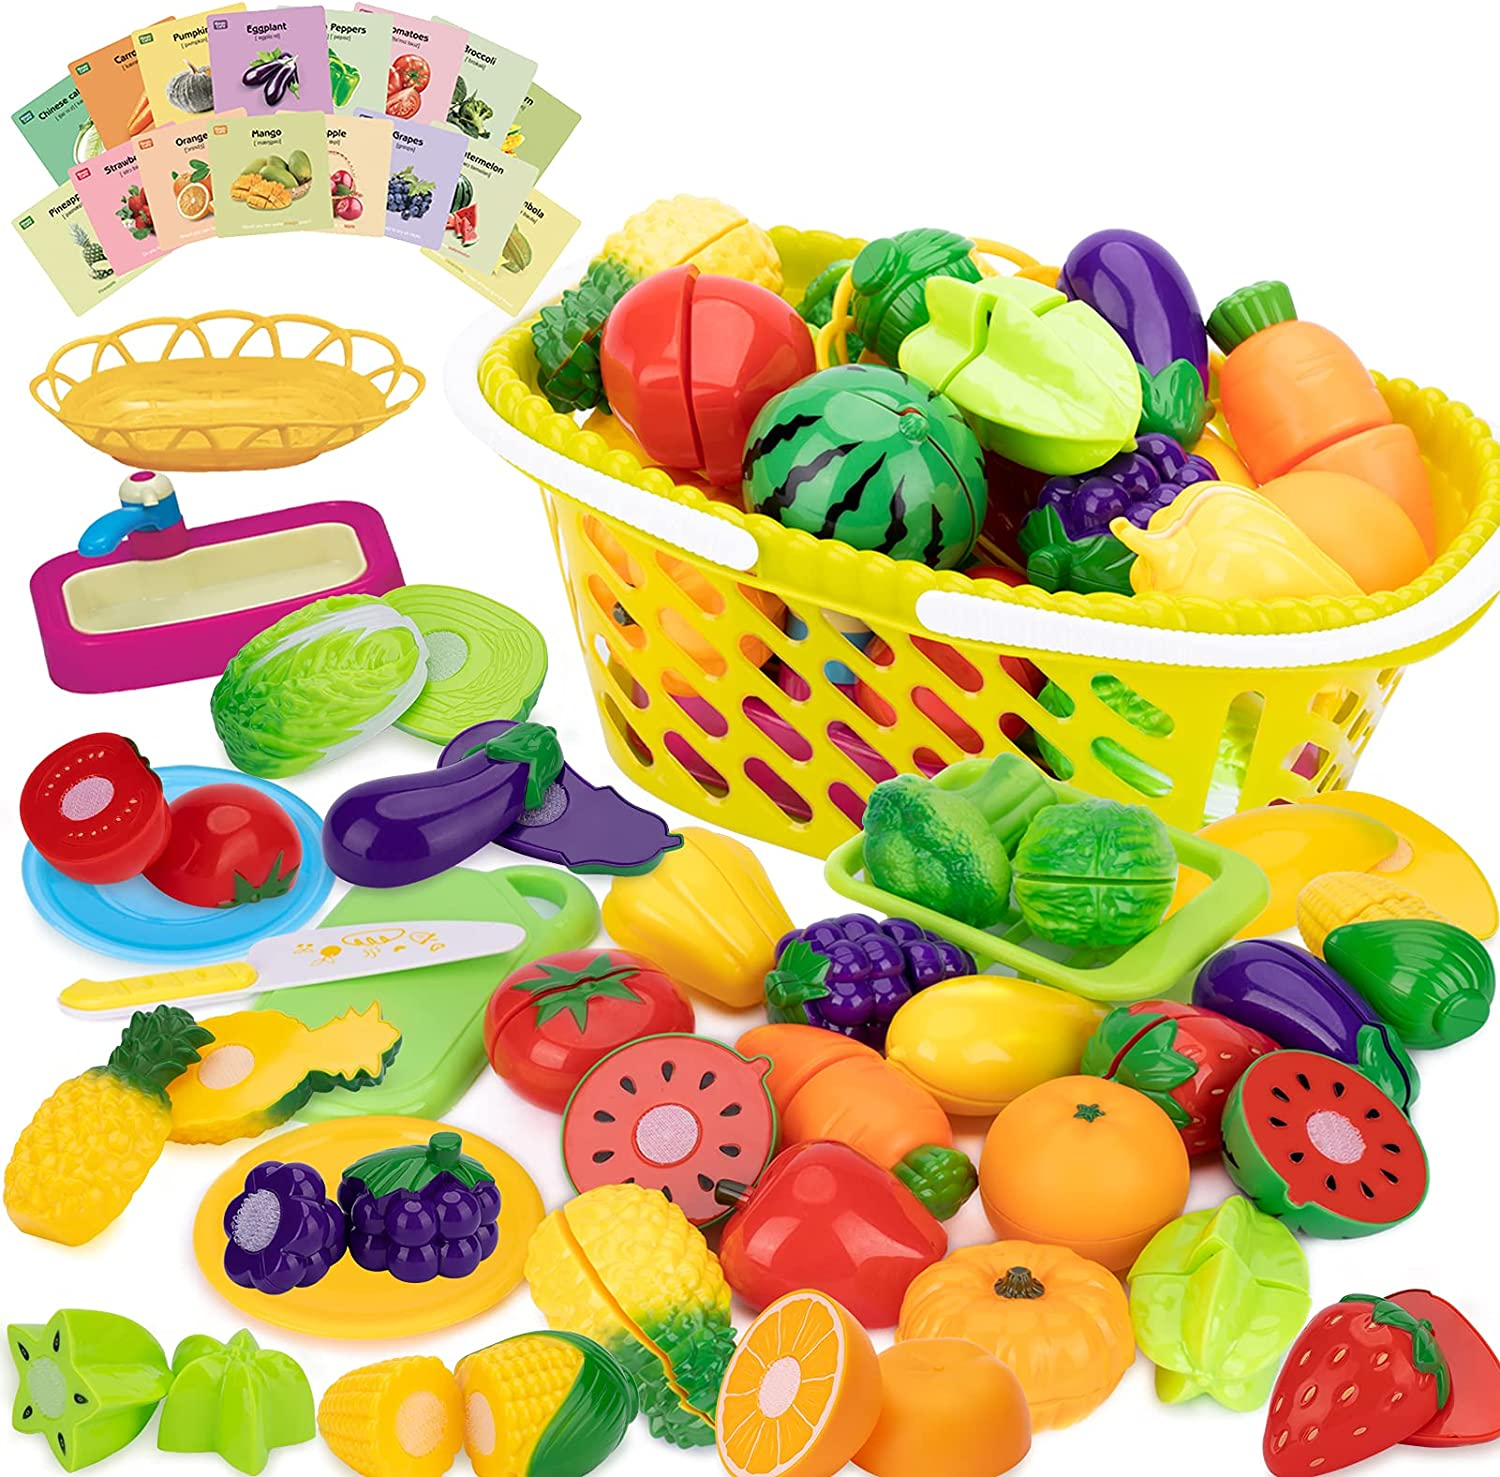 Dayeto 56 PCS Toy Cutting Play Food Set, Kids Pretend Fruit Vegetables Reading Card Dishes Knife and Shopping Basket, Learning Educational Play Kitchen Accessories Set Gifts for Boys & Girls